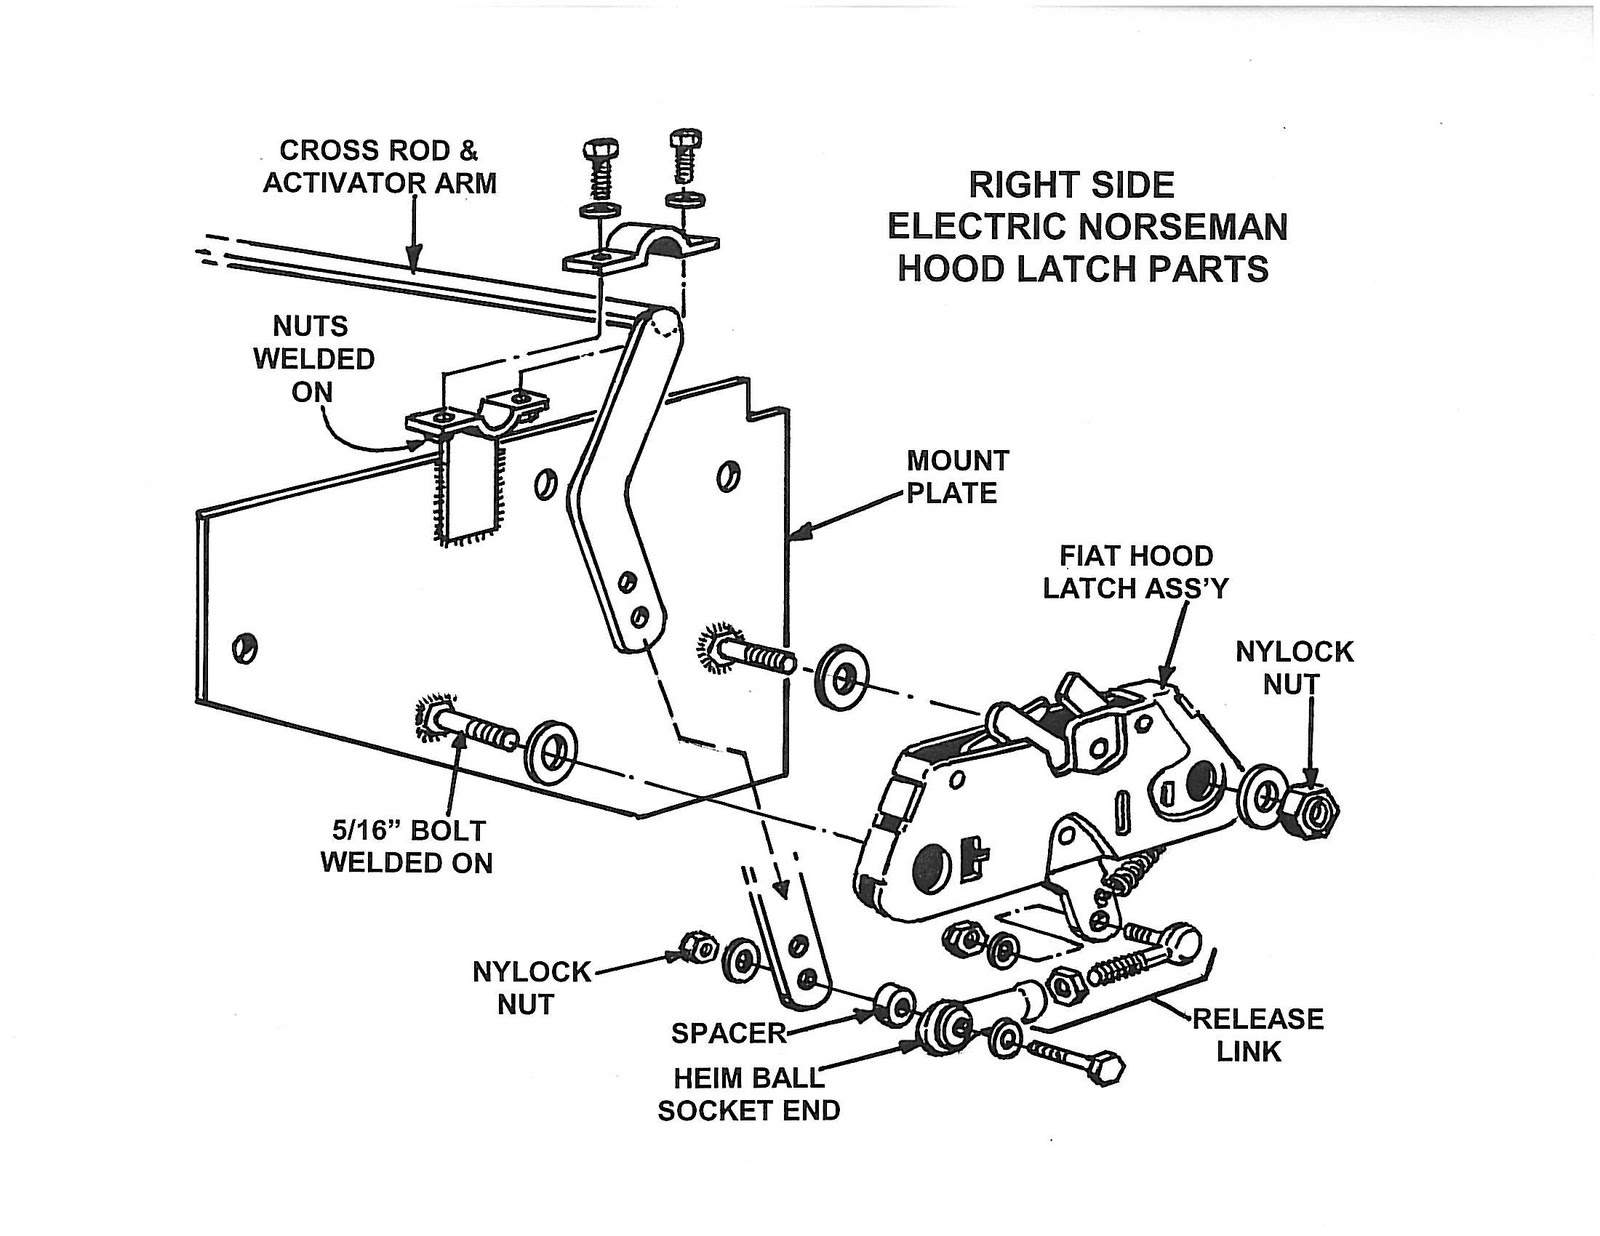 saab heated seat wiring diagram get free image about